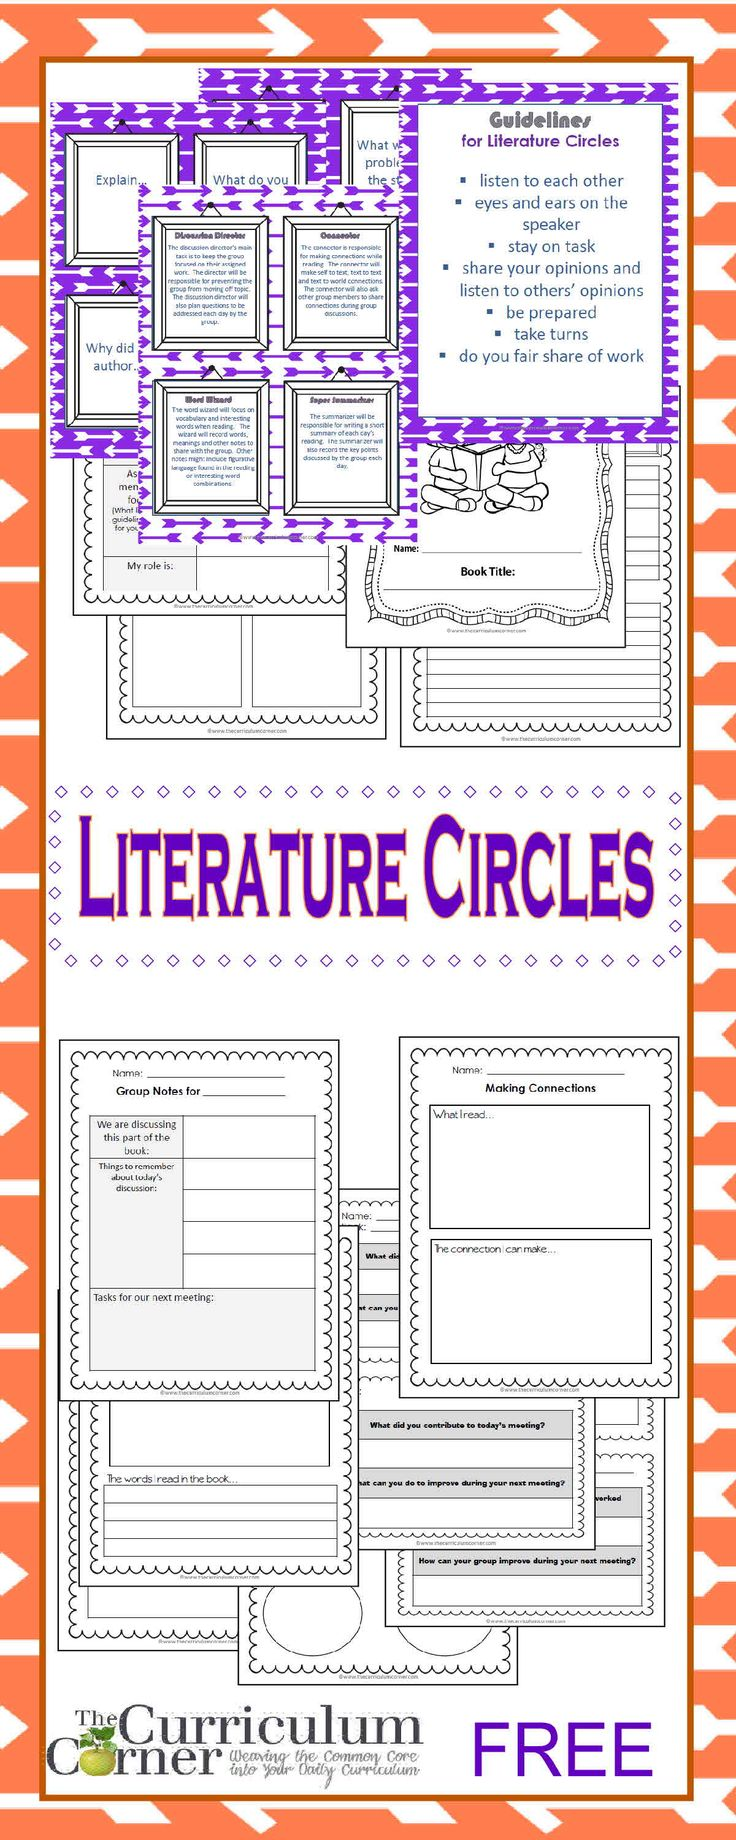 33 best fi cercles de lecture images on Pinterest | Reading, Guided ...